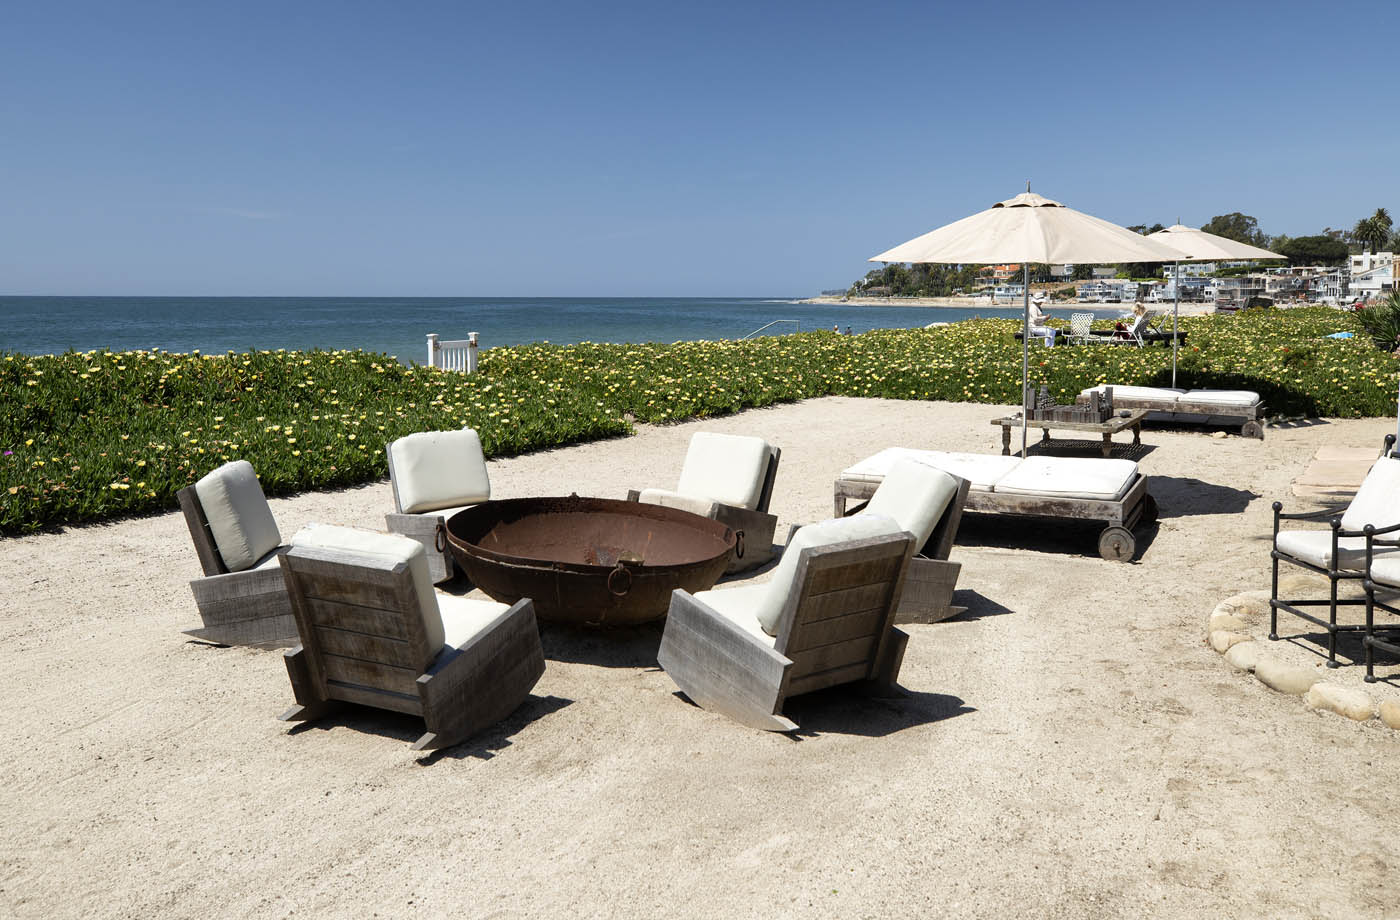 Montecito Beachfront - $11,900,000